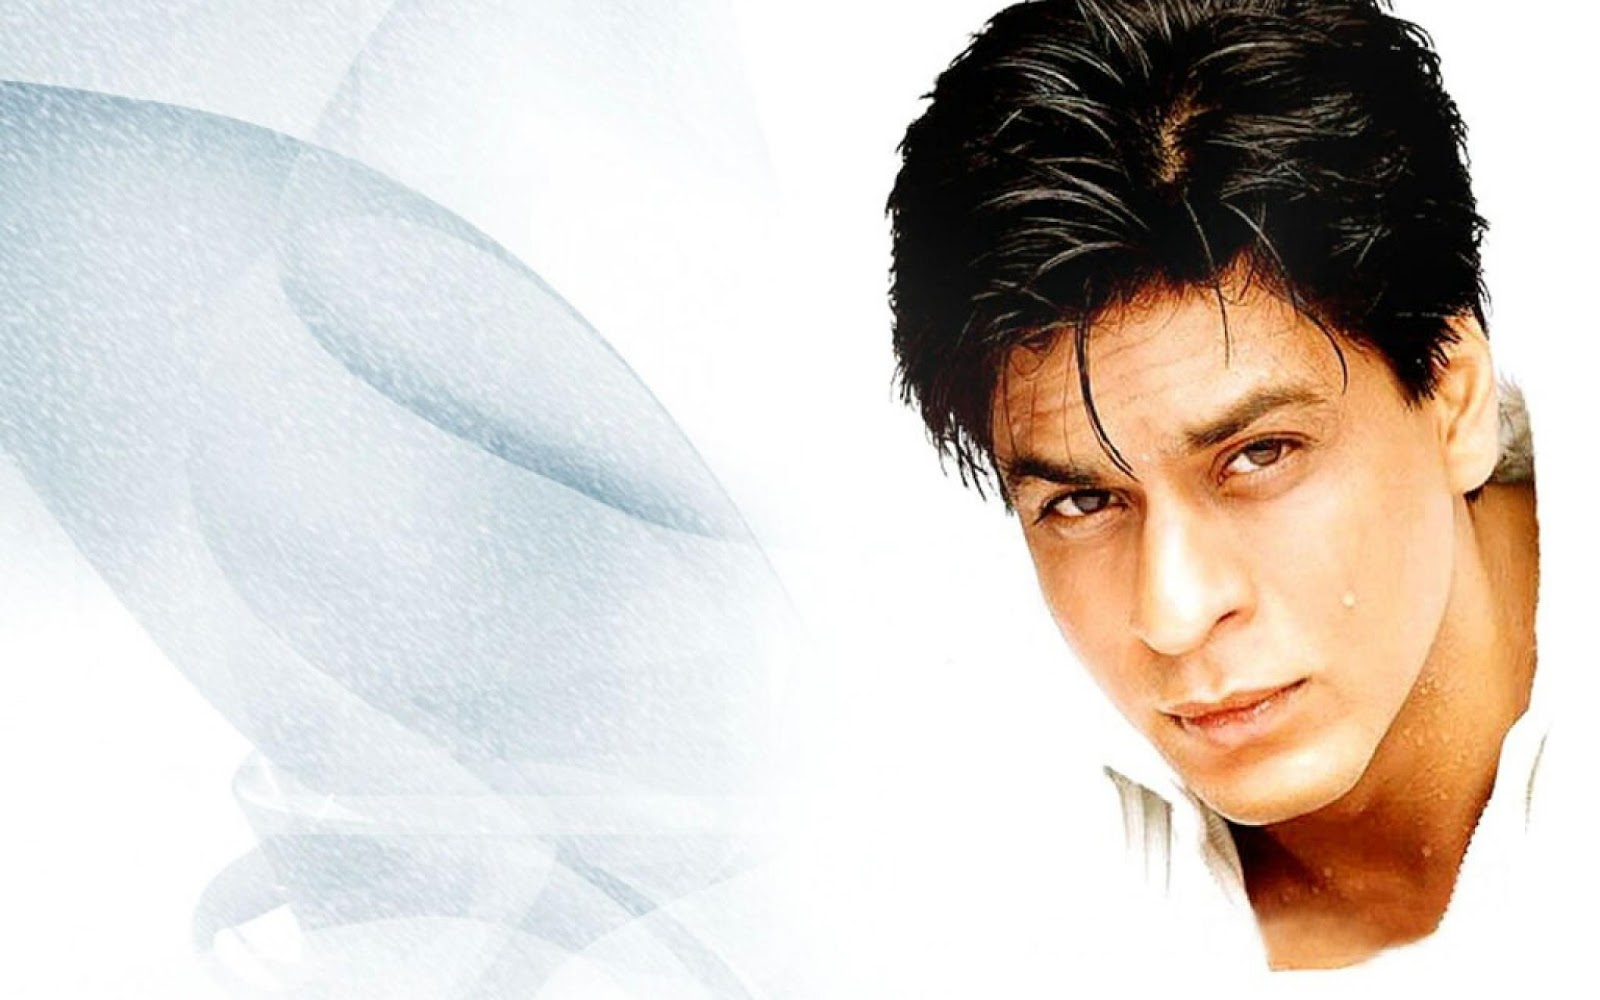 Download Free Hd Wallpapers Of Shahrukh Khan: Shahrukh Khan HD Wallpapers